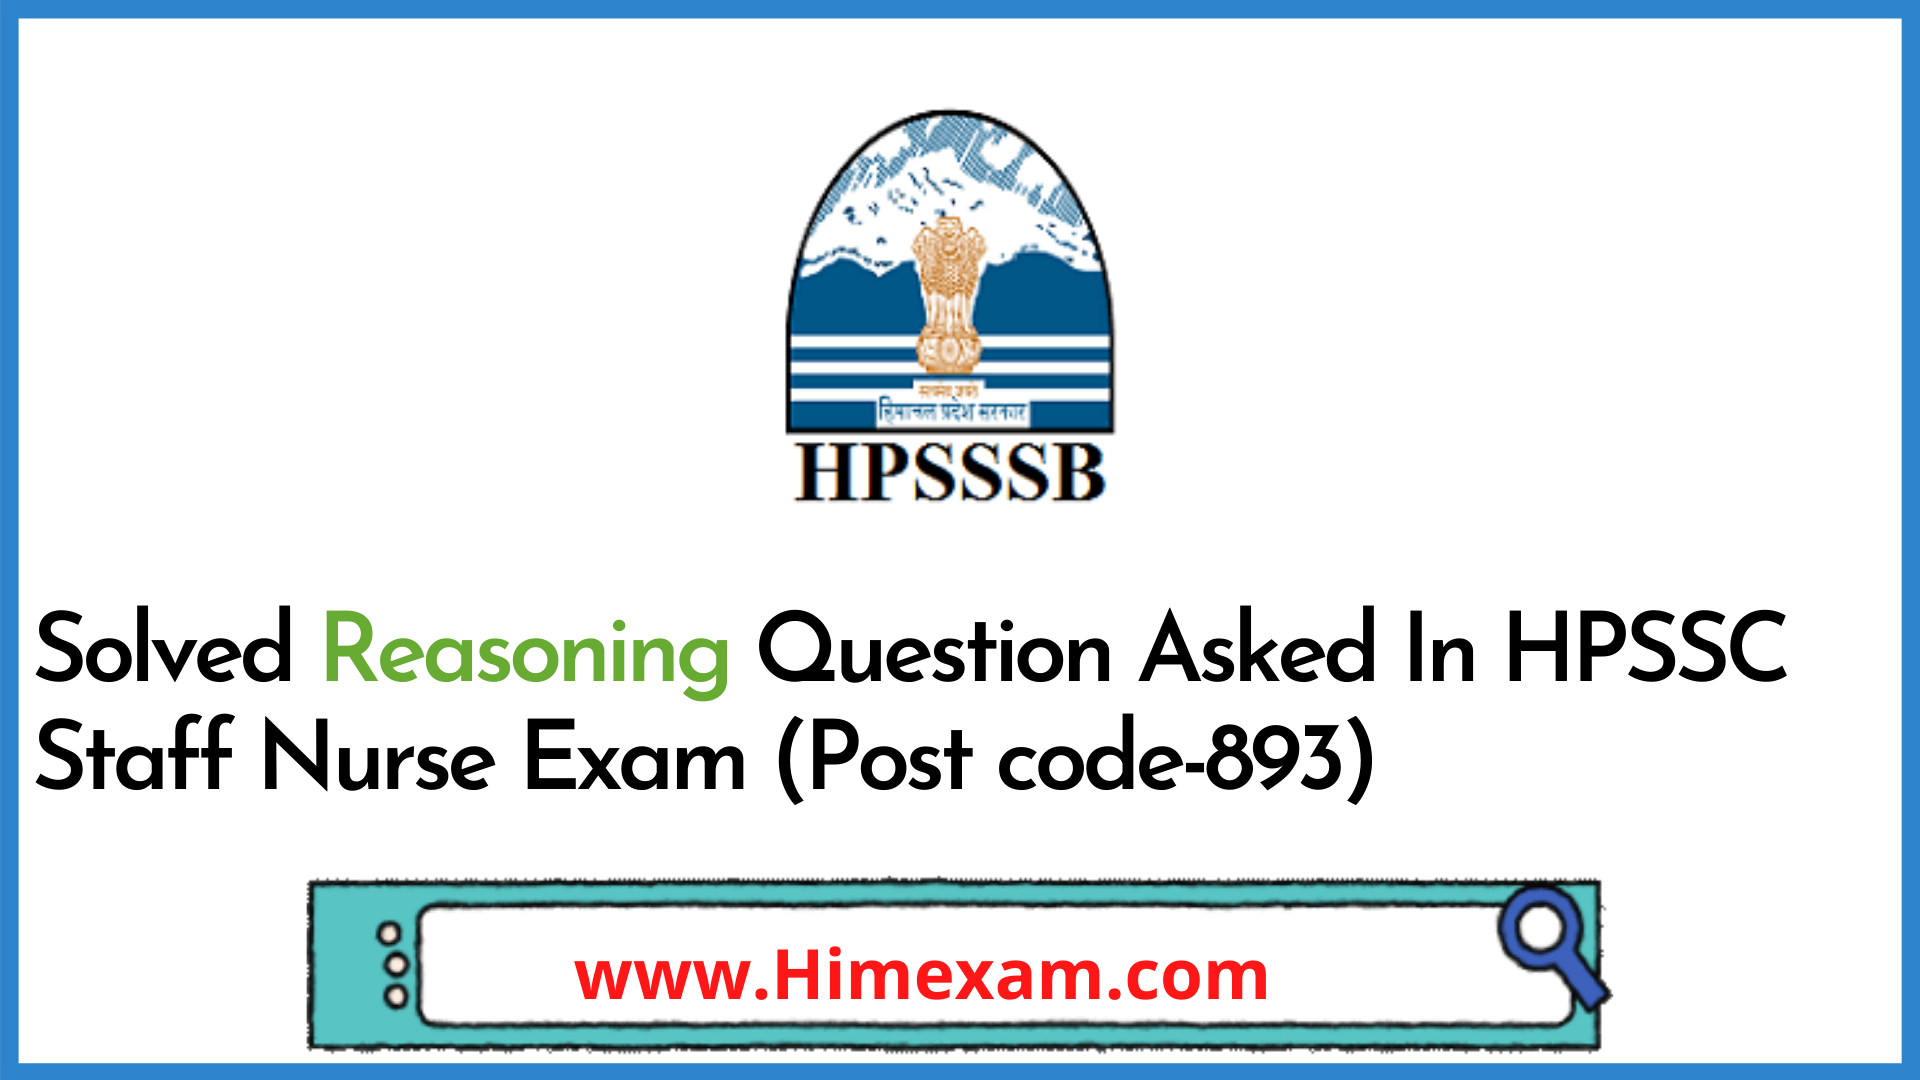 Solved Reasoning Question Asked In HPSSC Staff Nurse Exam (Post code-893)